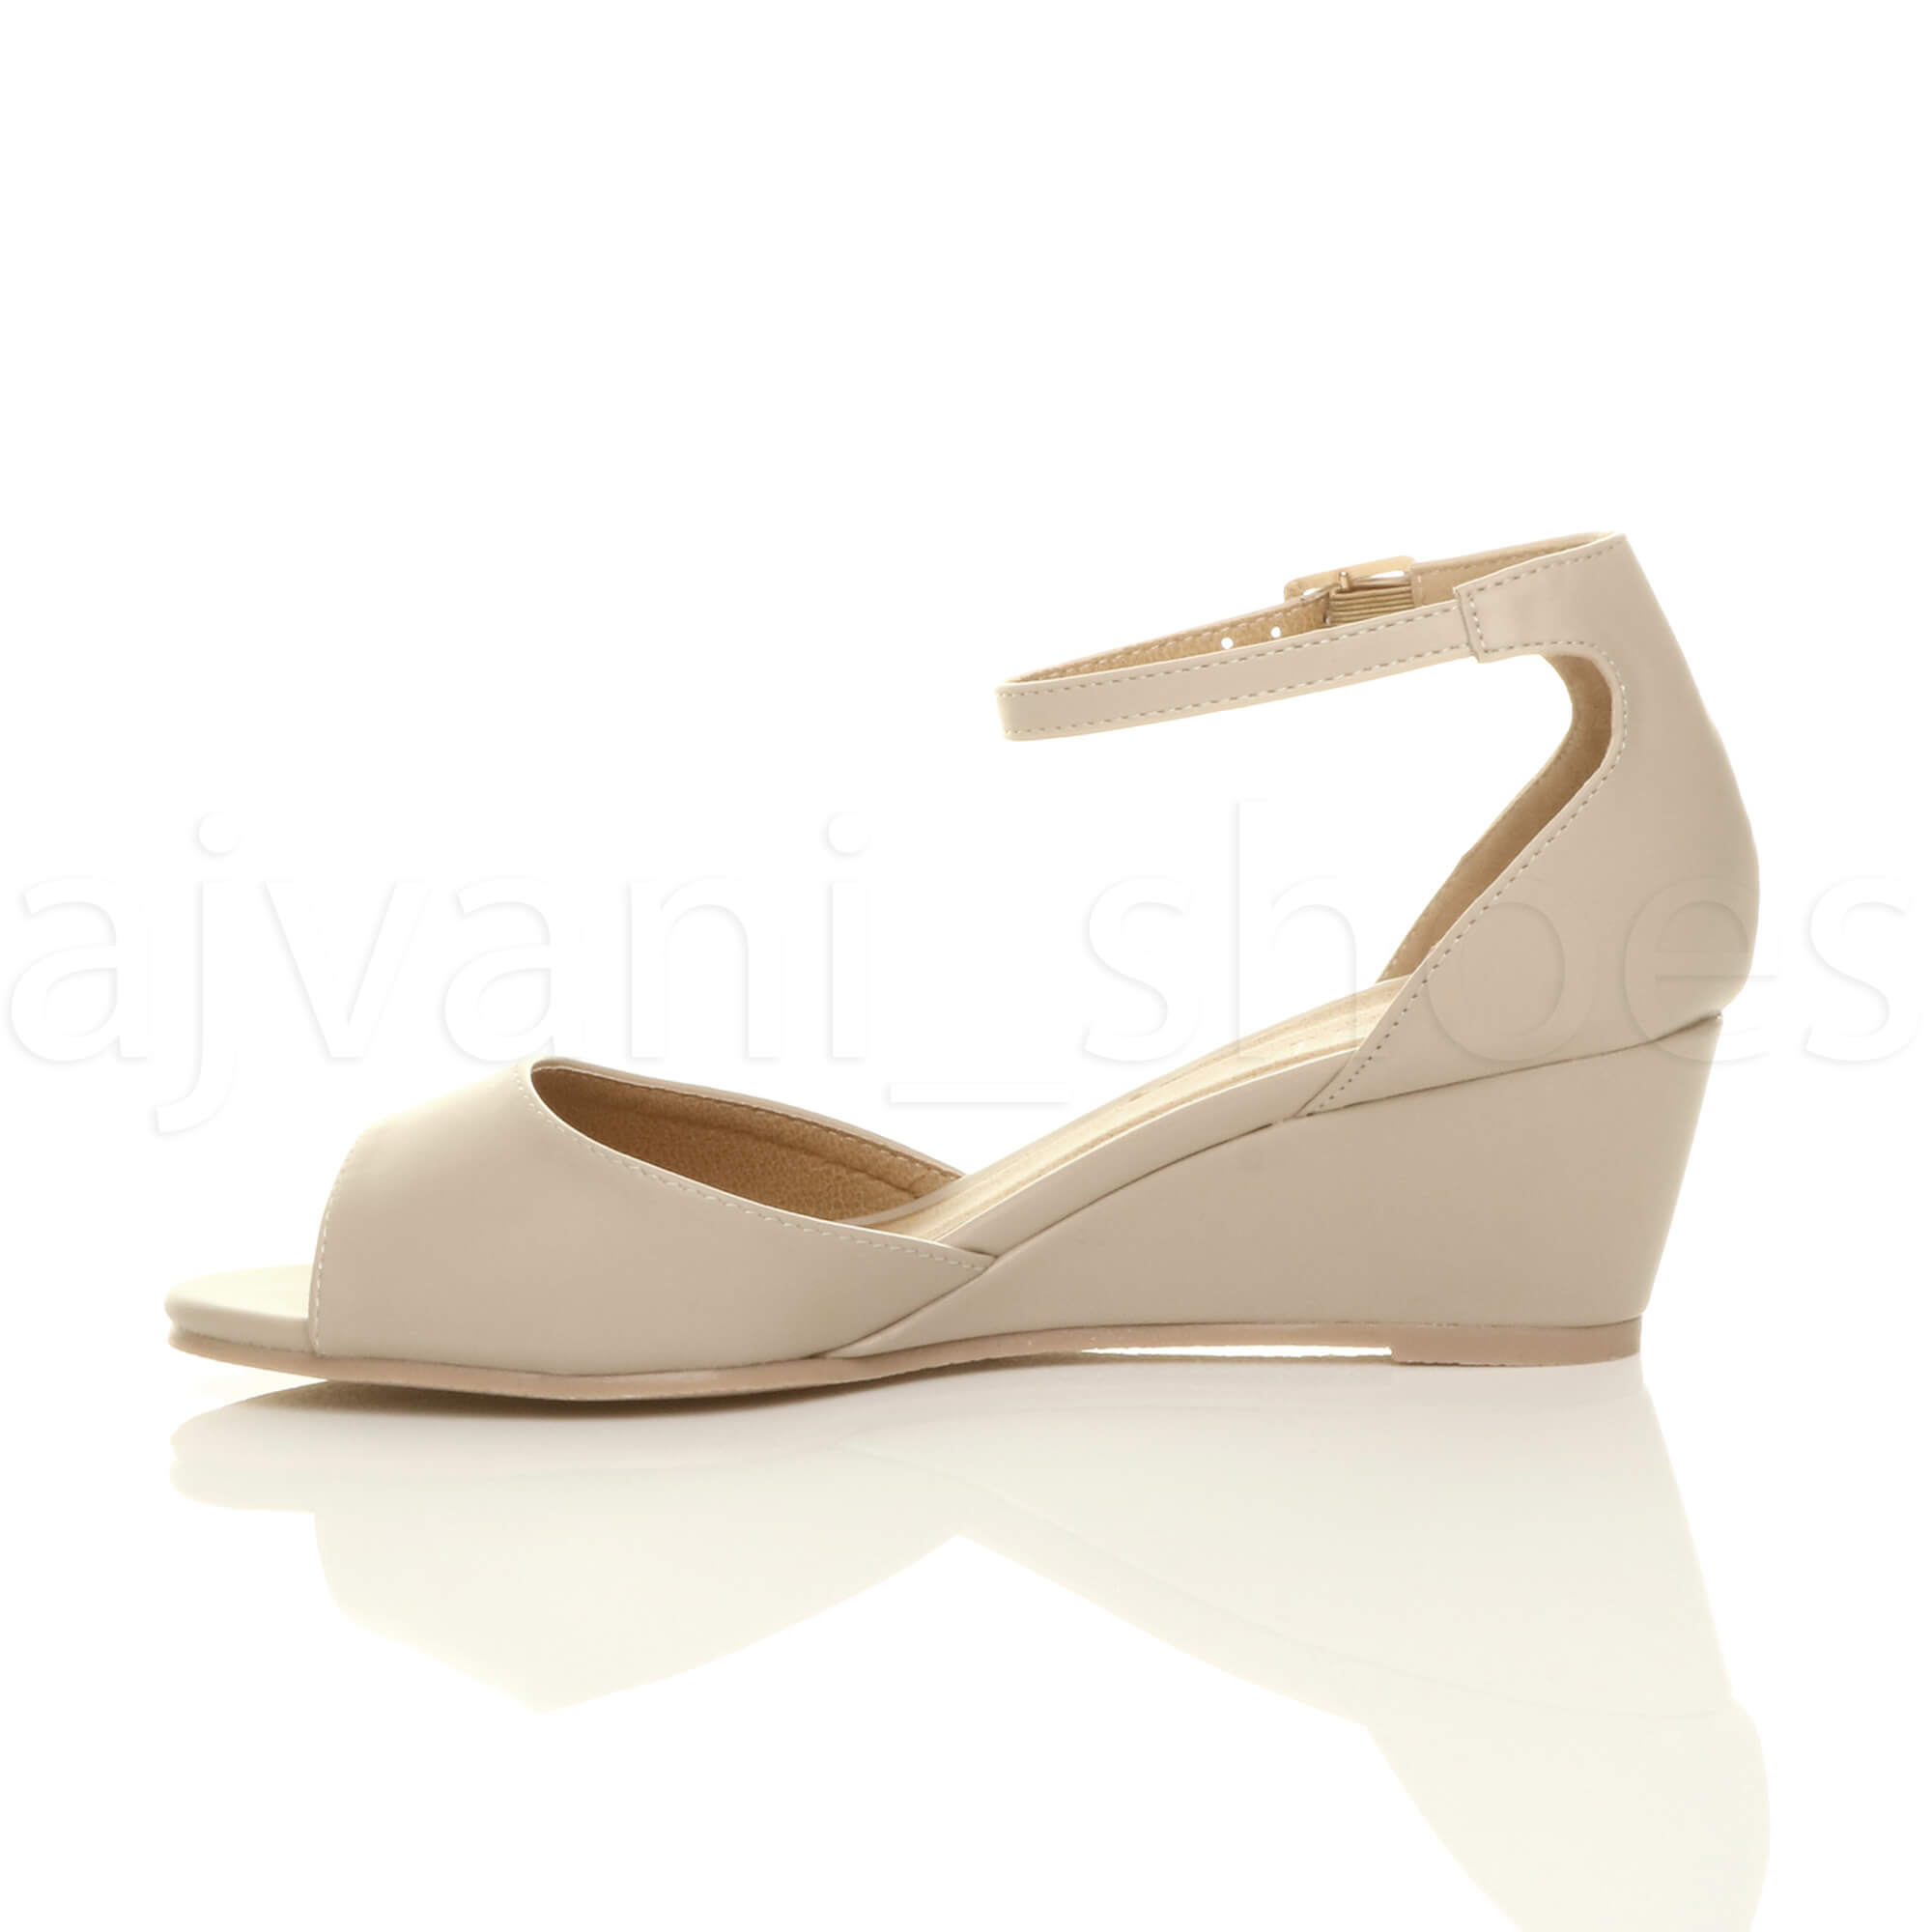 WOMENS-LADIES-LOW-MID-WEDGE-HEEL-ANKLE-STRAP-SMART-CASUAL-EVENING-SANDALS-SIZE thumbnail 92